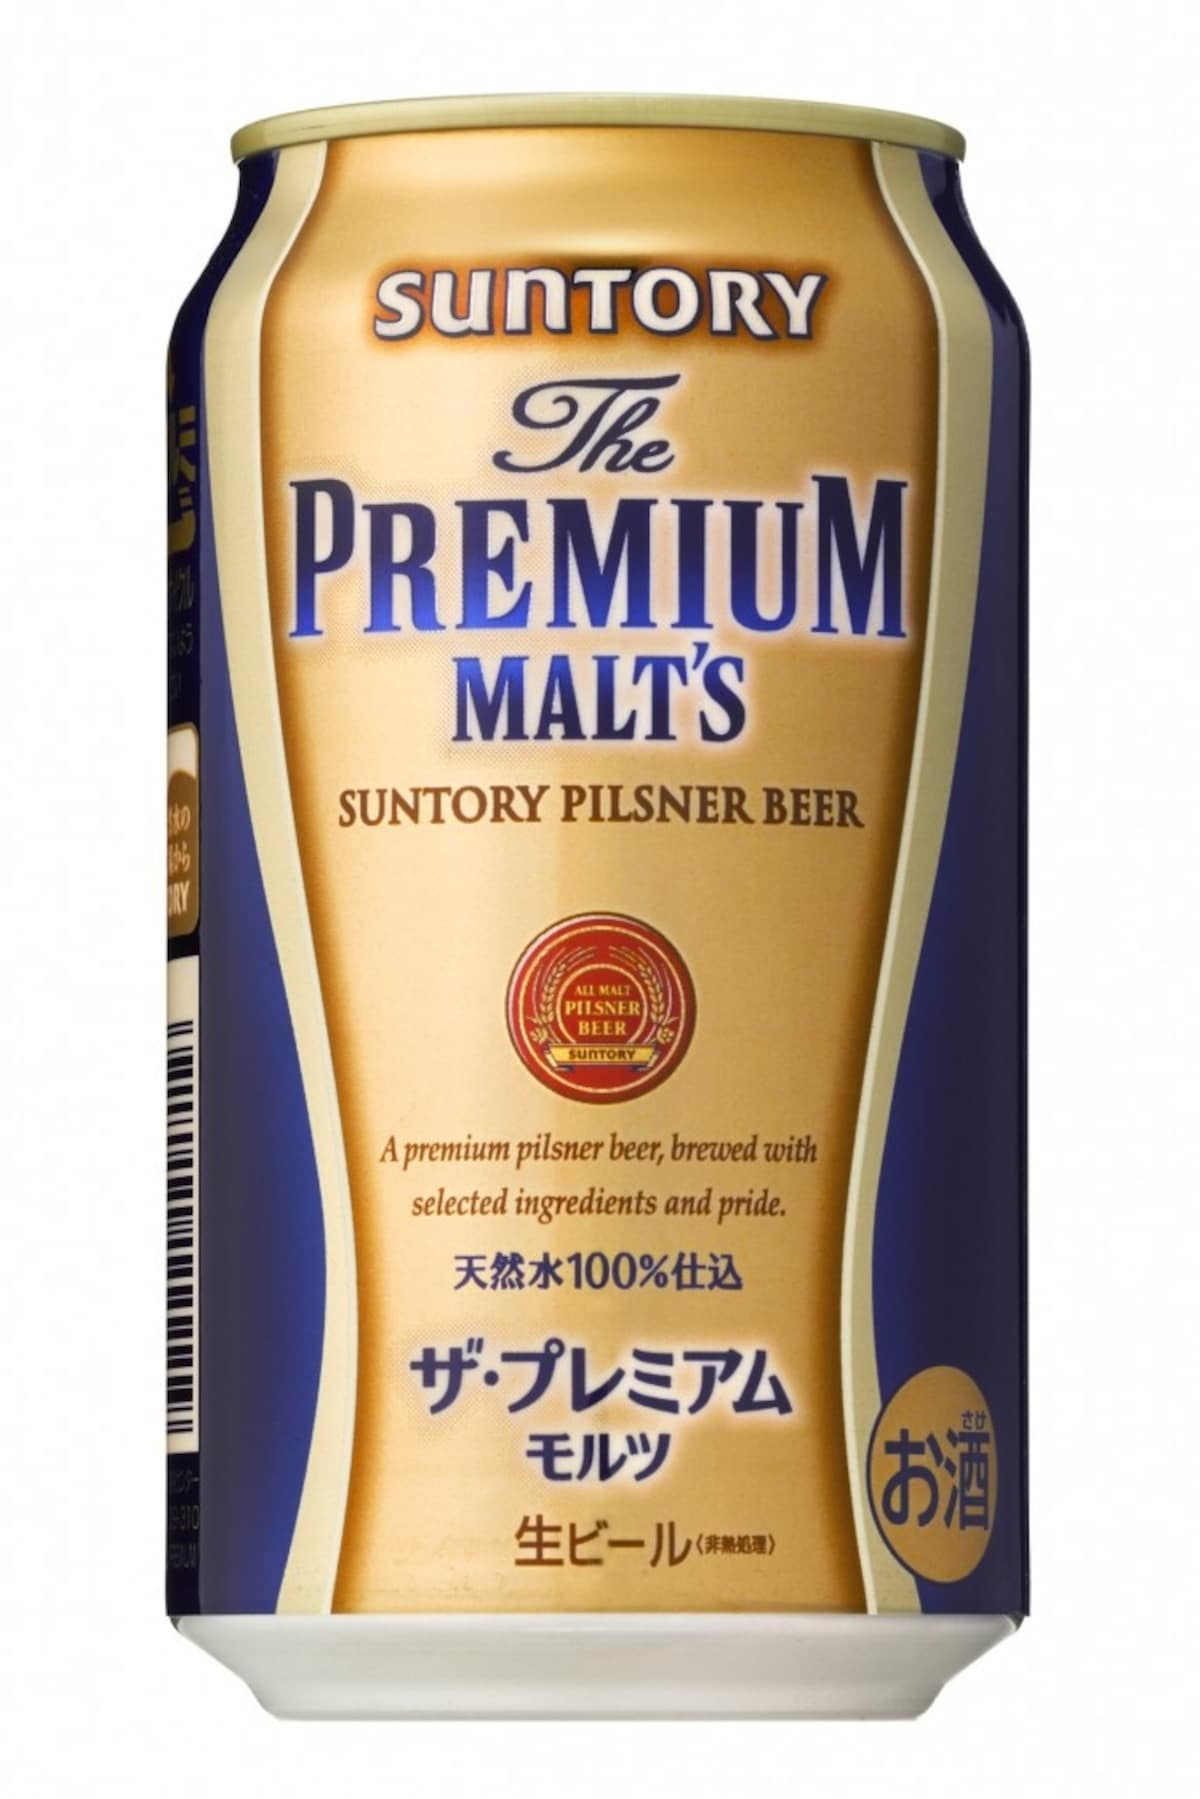 3. Suntory The Premium Malt's